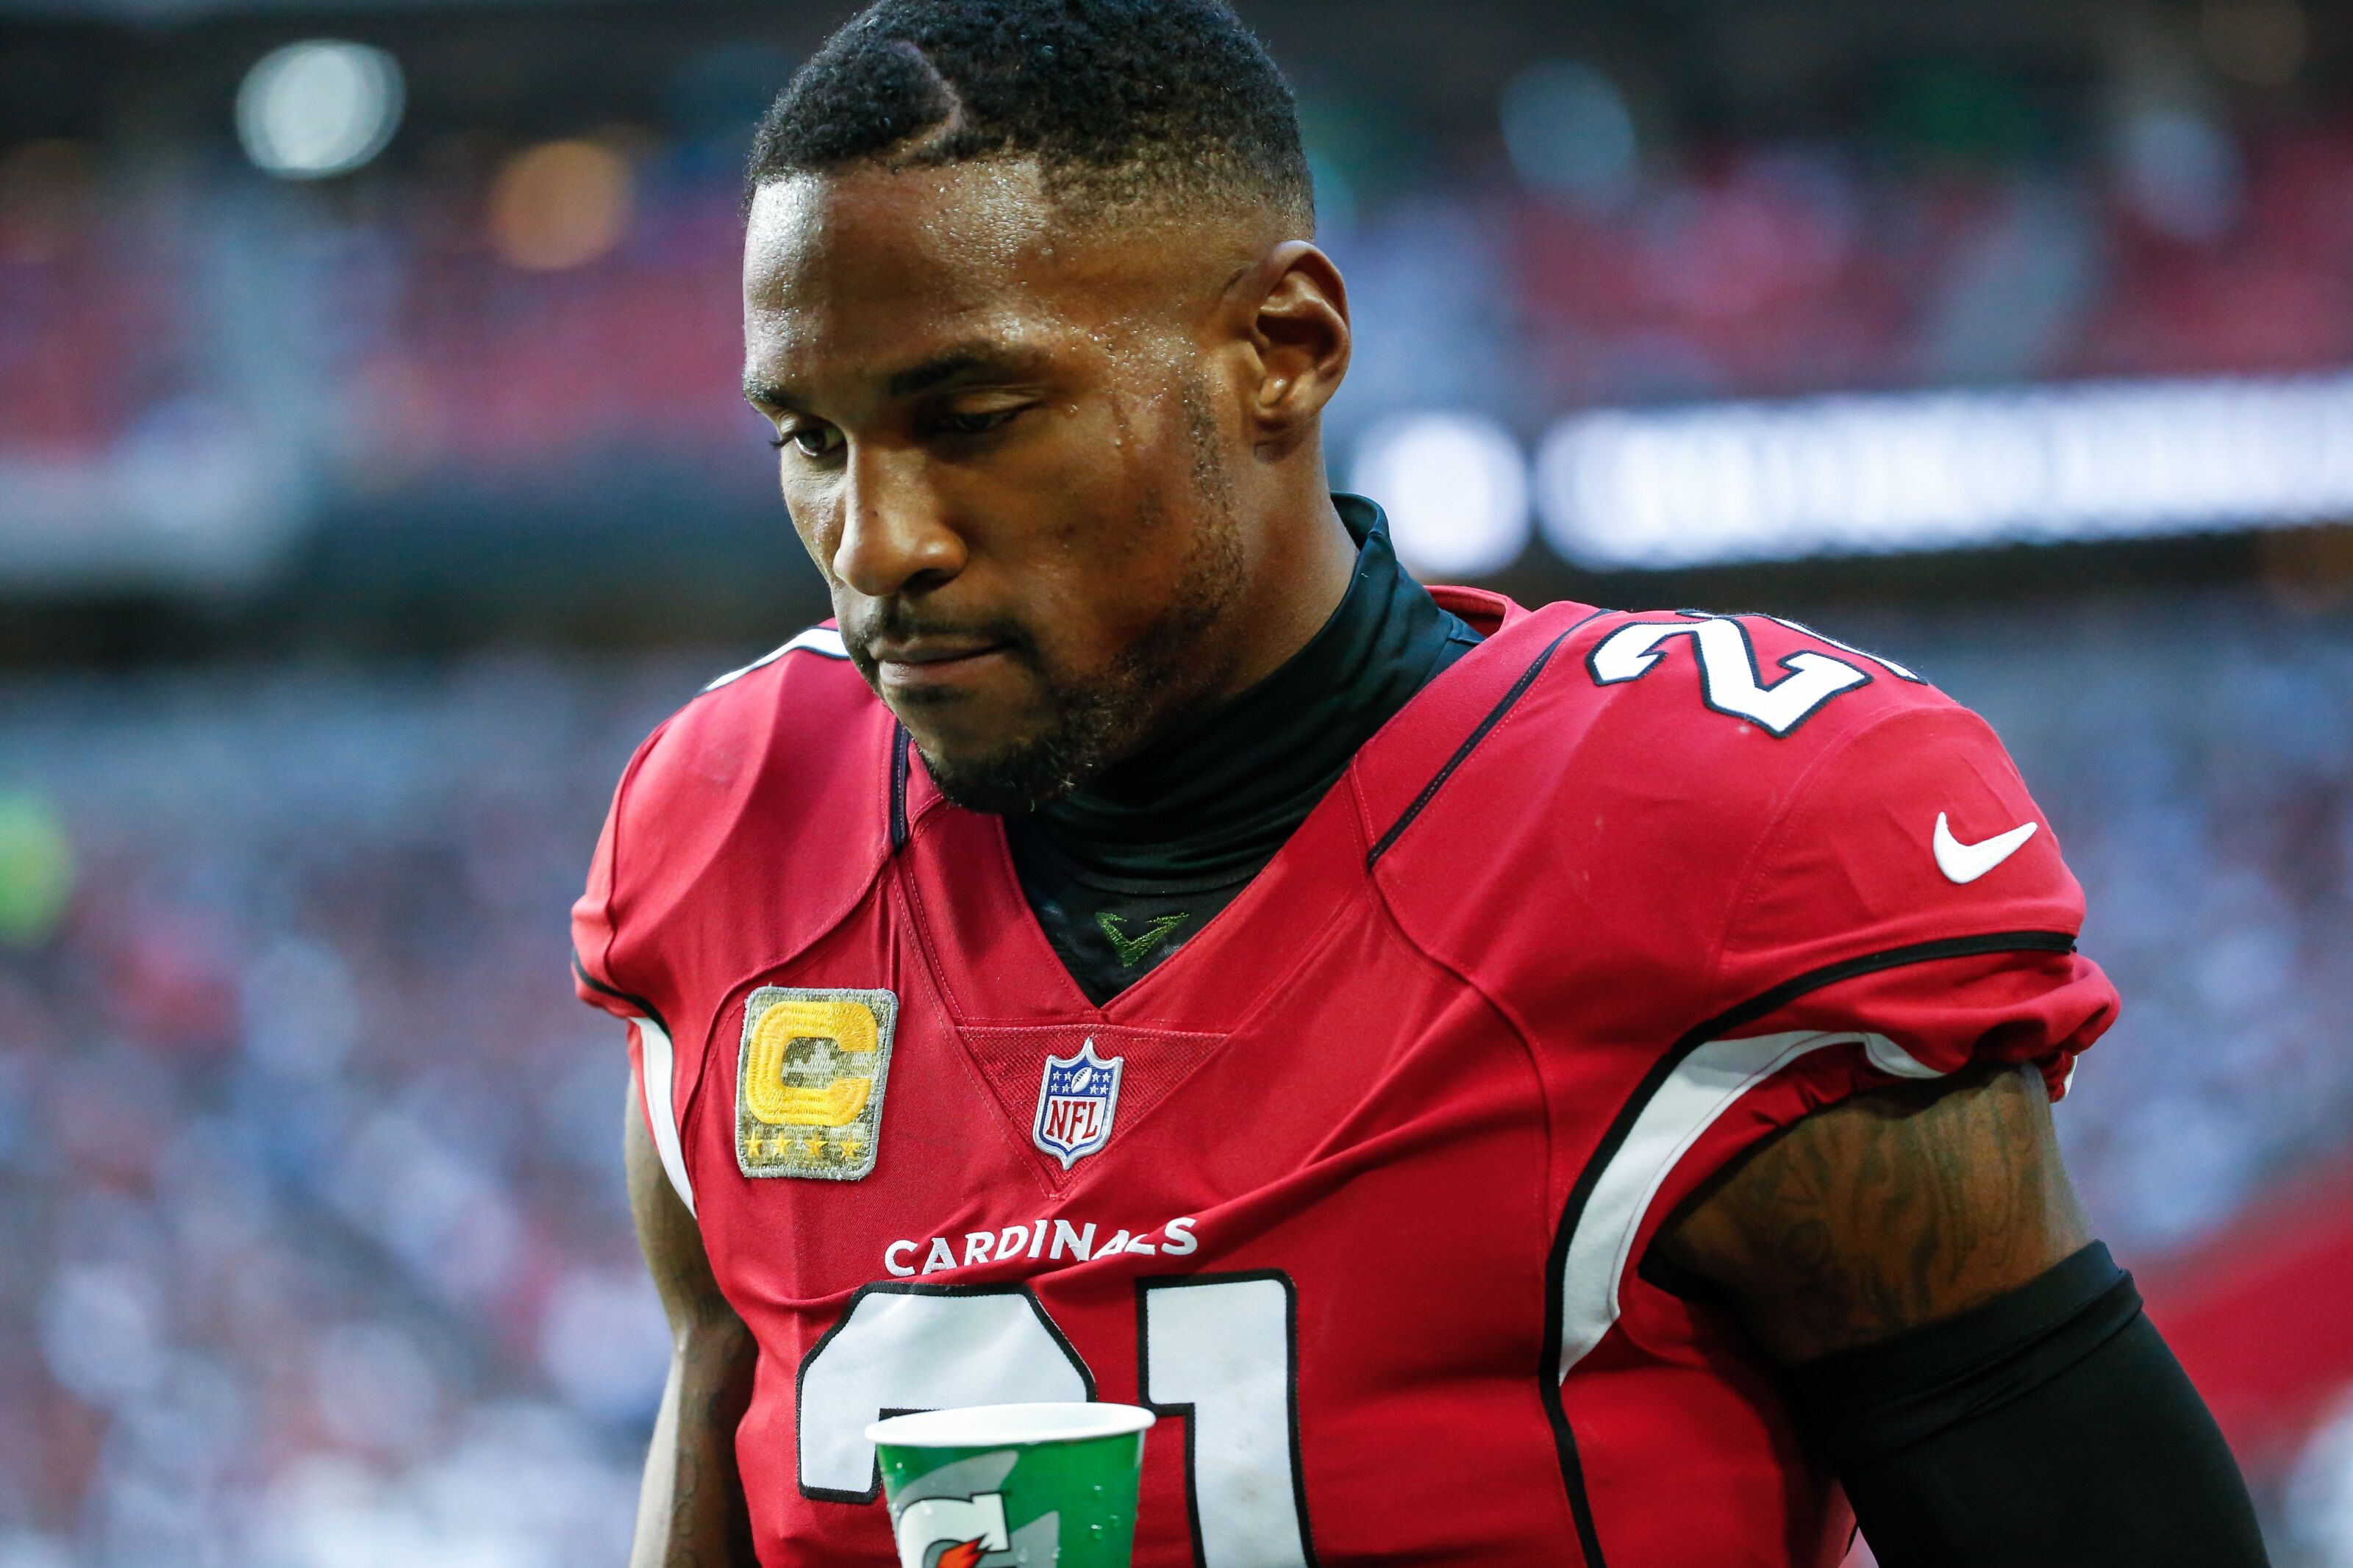 Patrick Peterson likely won't be traded until in-season, if at all